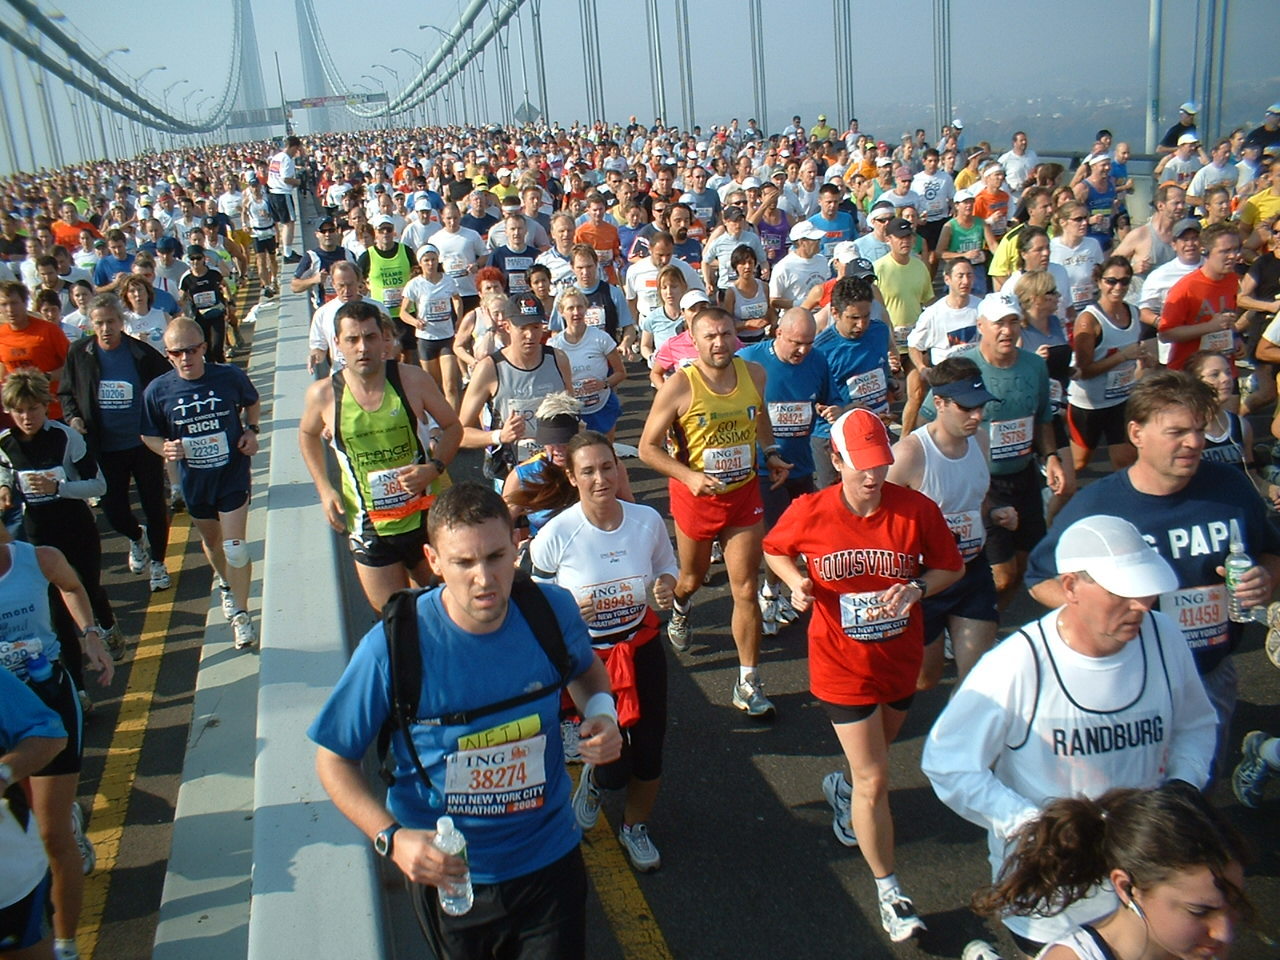 Verrazano Bridge, NYC Marathon